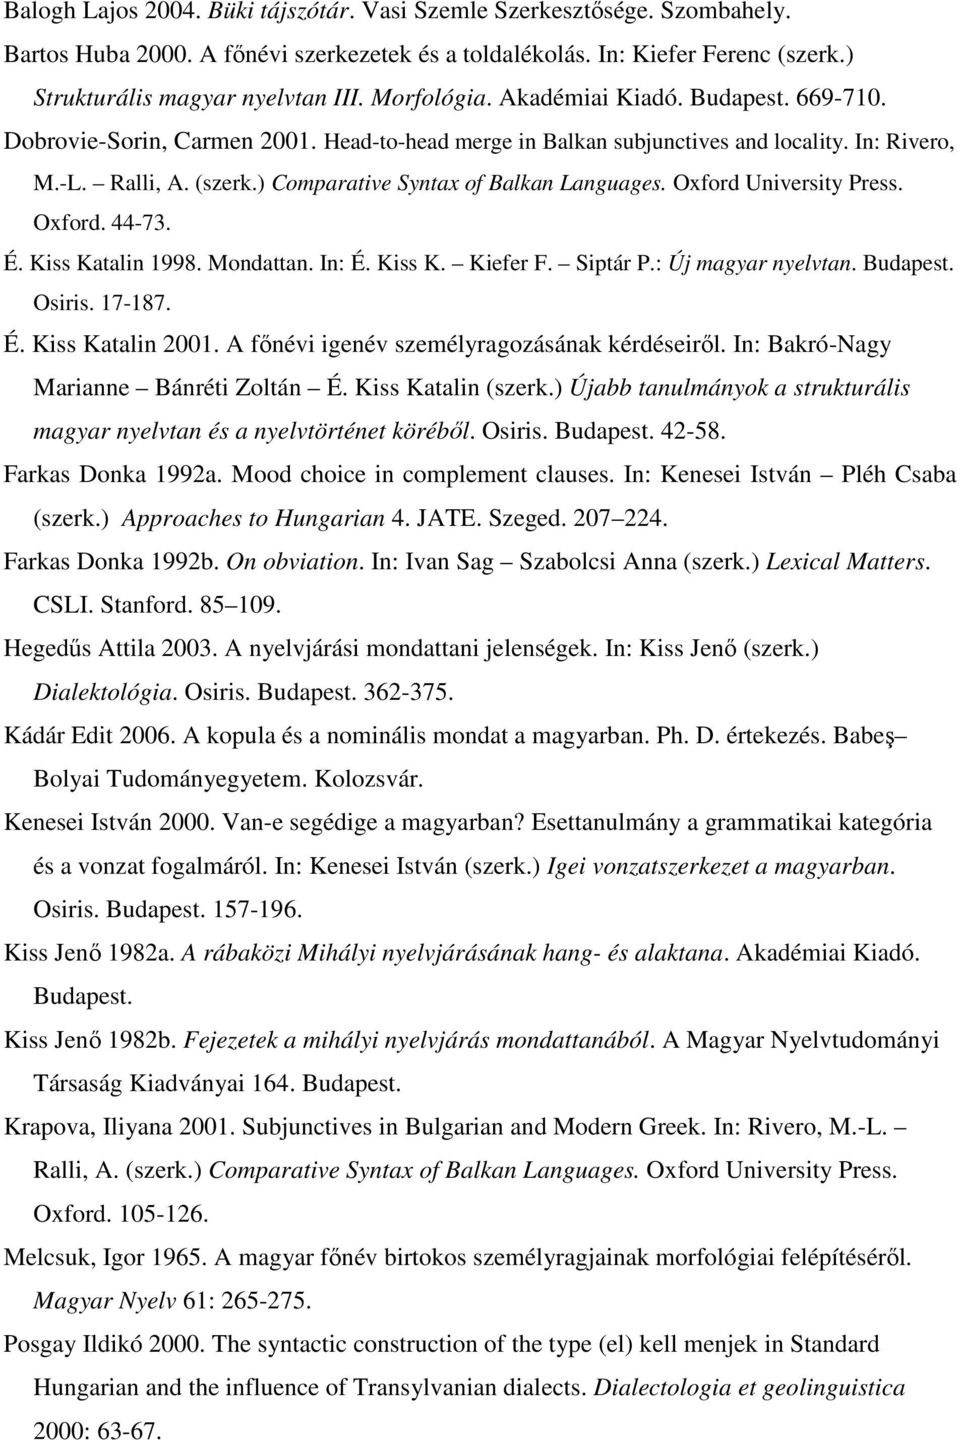 ) Comparative Syntax of Balkan Languages. Oxford University Press. Oxford. 44-73. É. Kiss Katalin 1998. Mondattan. In: É. Kiss K. Kiefer F. Siptár P.: Új magyar nyelvtan. Budapest. Osiris. 17-187. É. Kiss Katalin 2001.